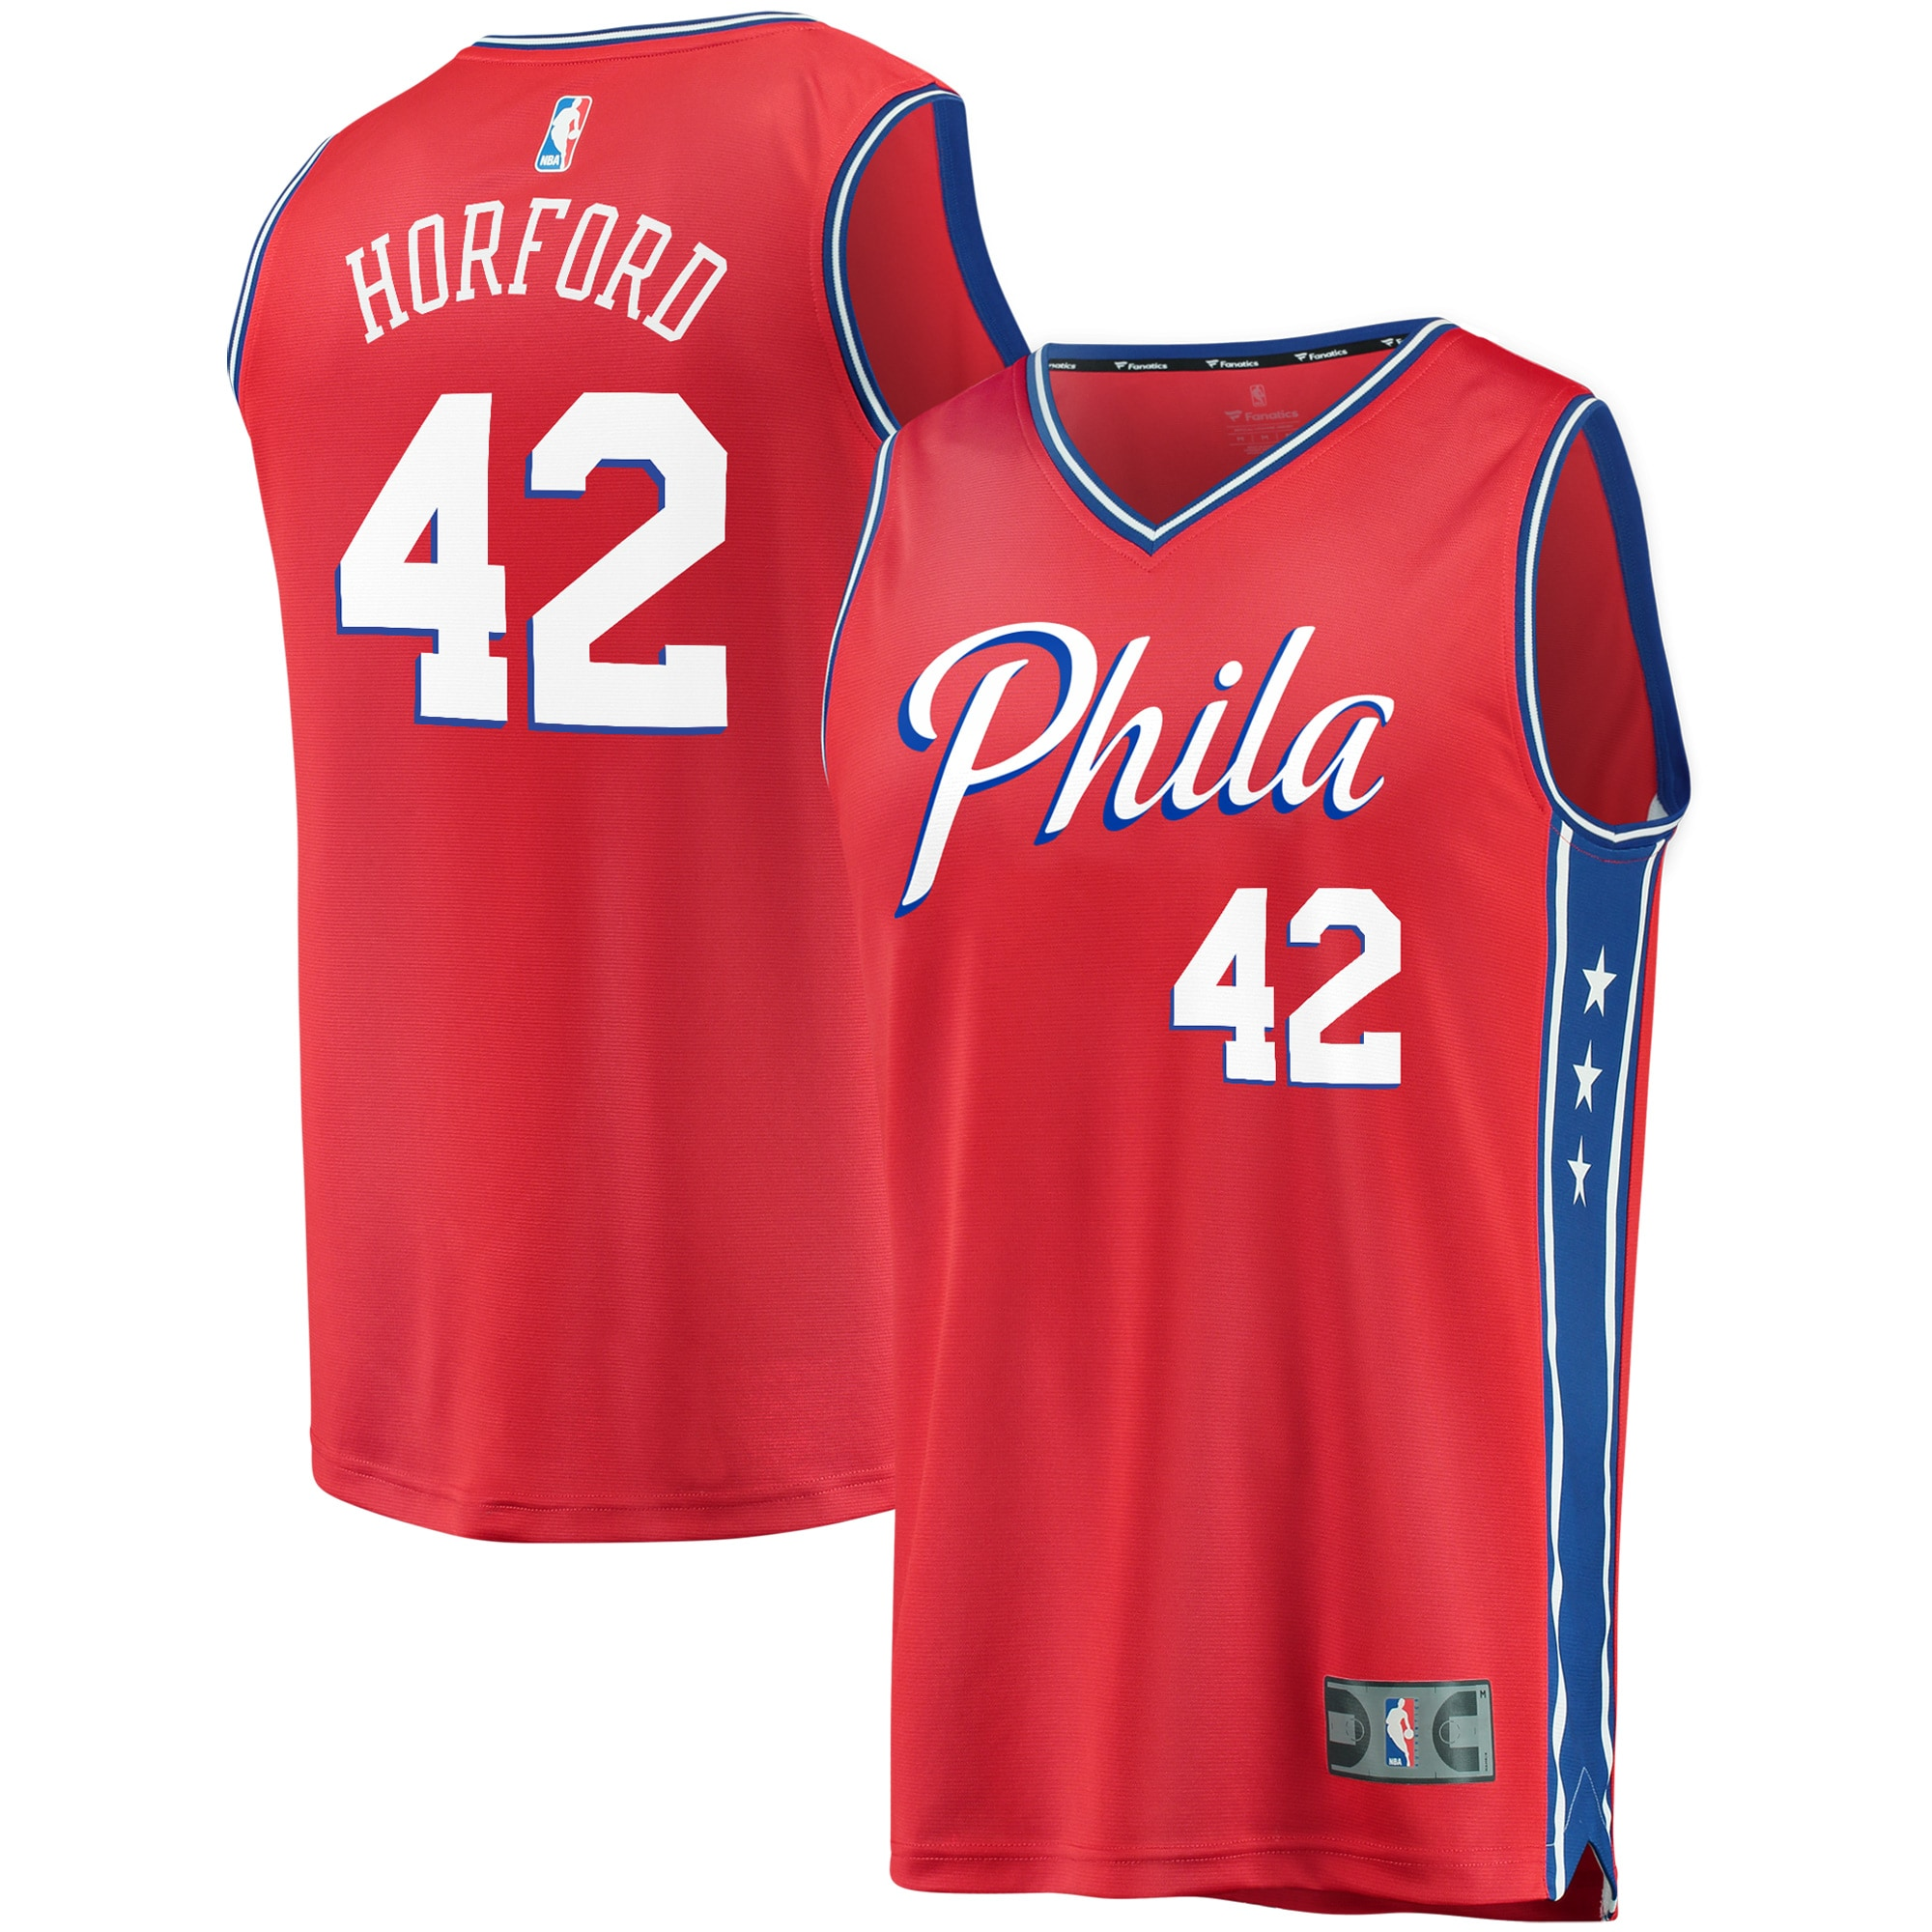 Al Horford Philadelphia 76ers Fanatics Branded Fast Break Replica Jersey - Statement Edition - Red